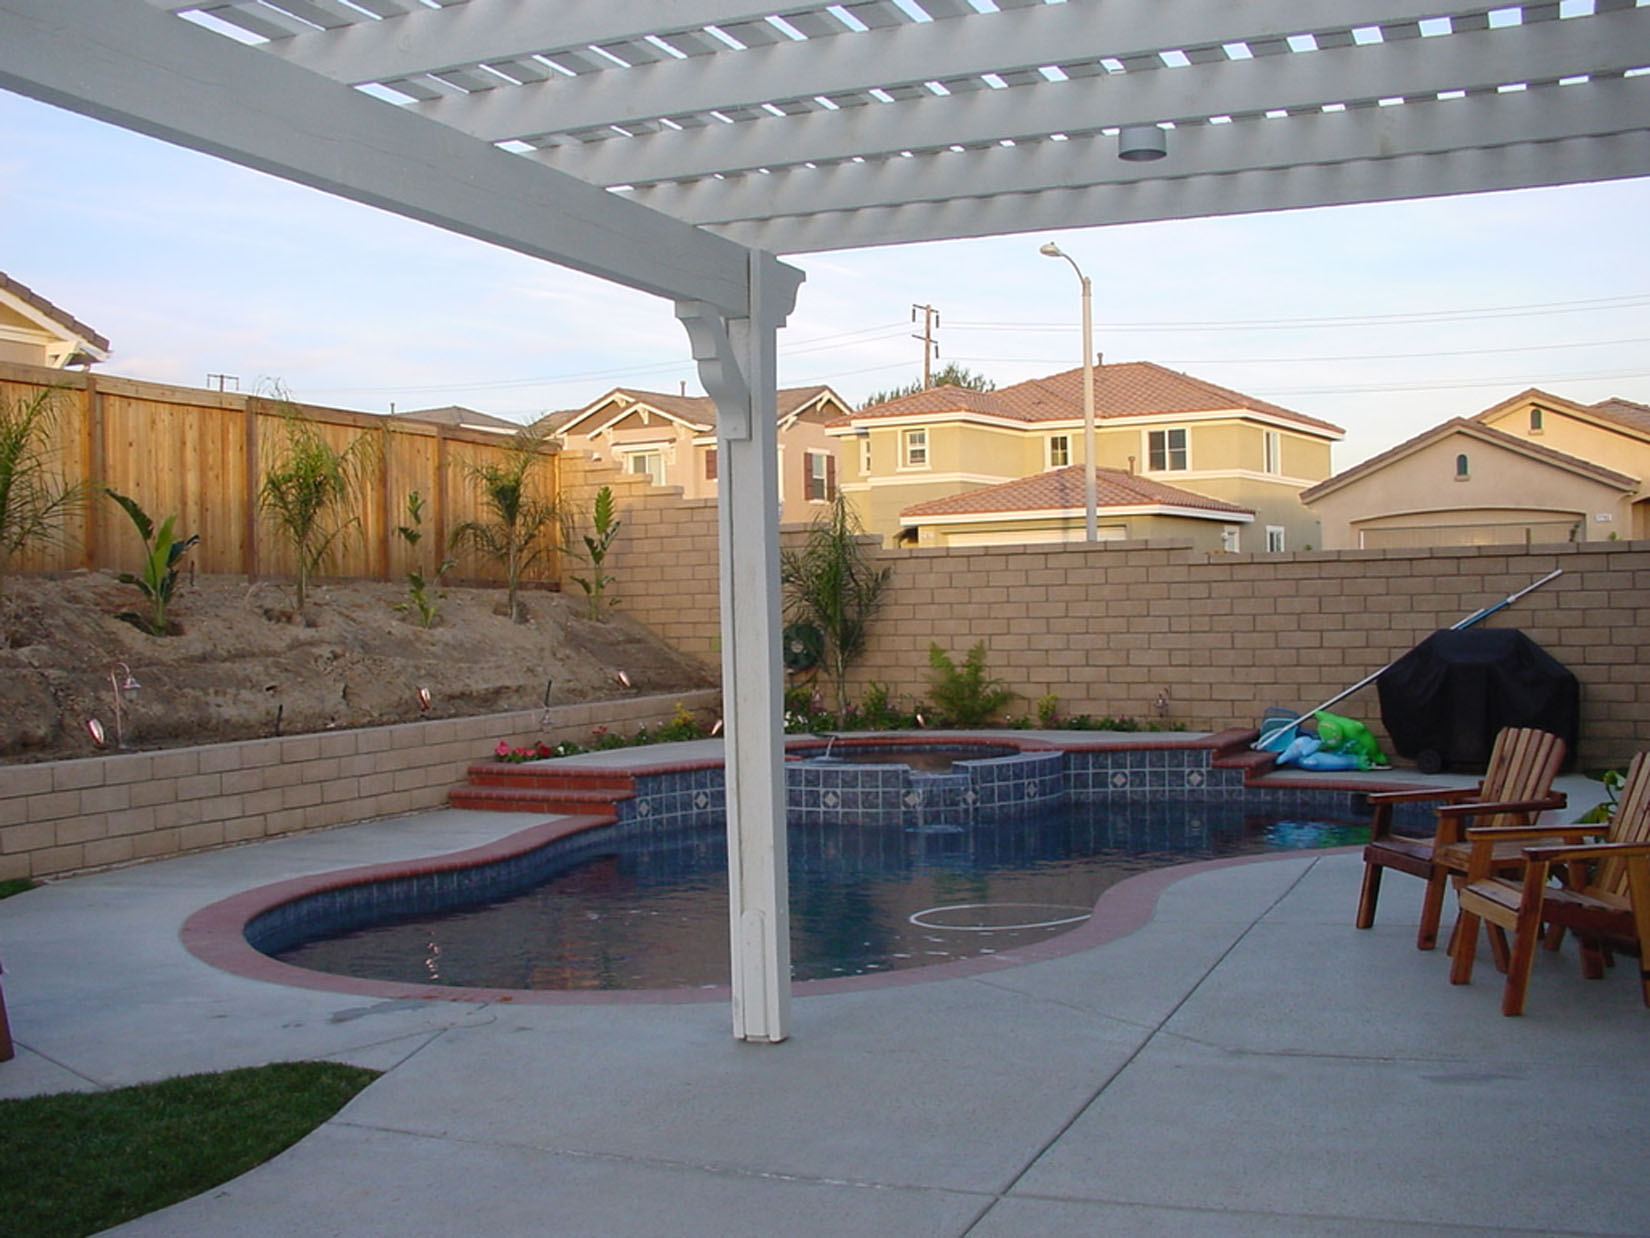 Patio Covers How To Build Your Own Pool How To Build